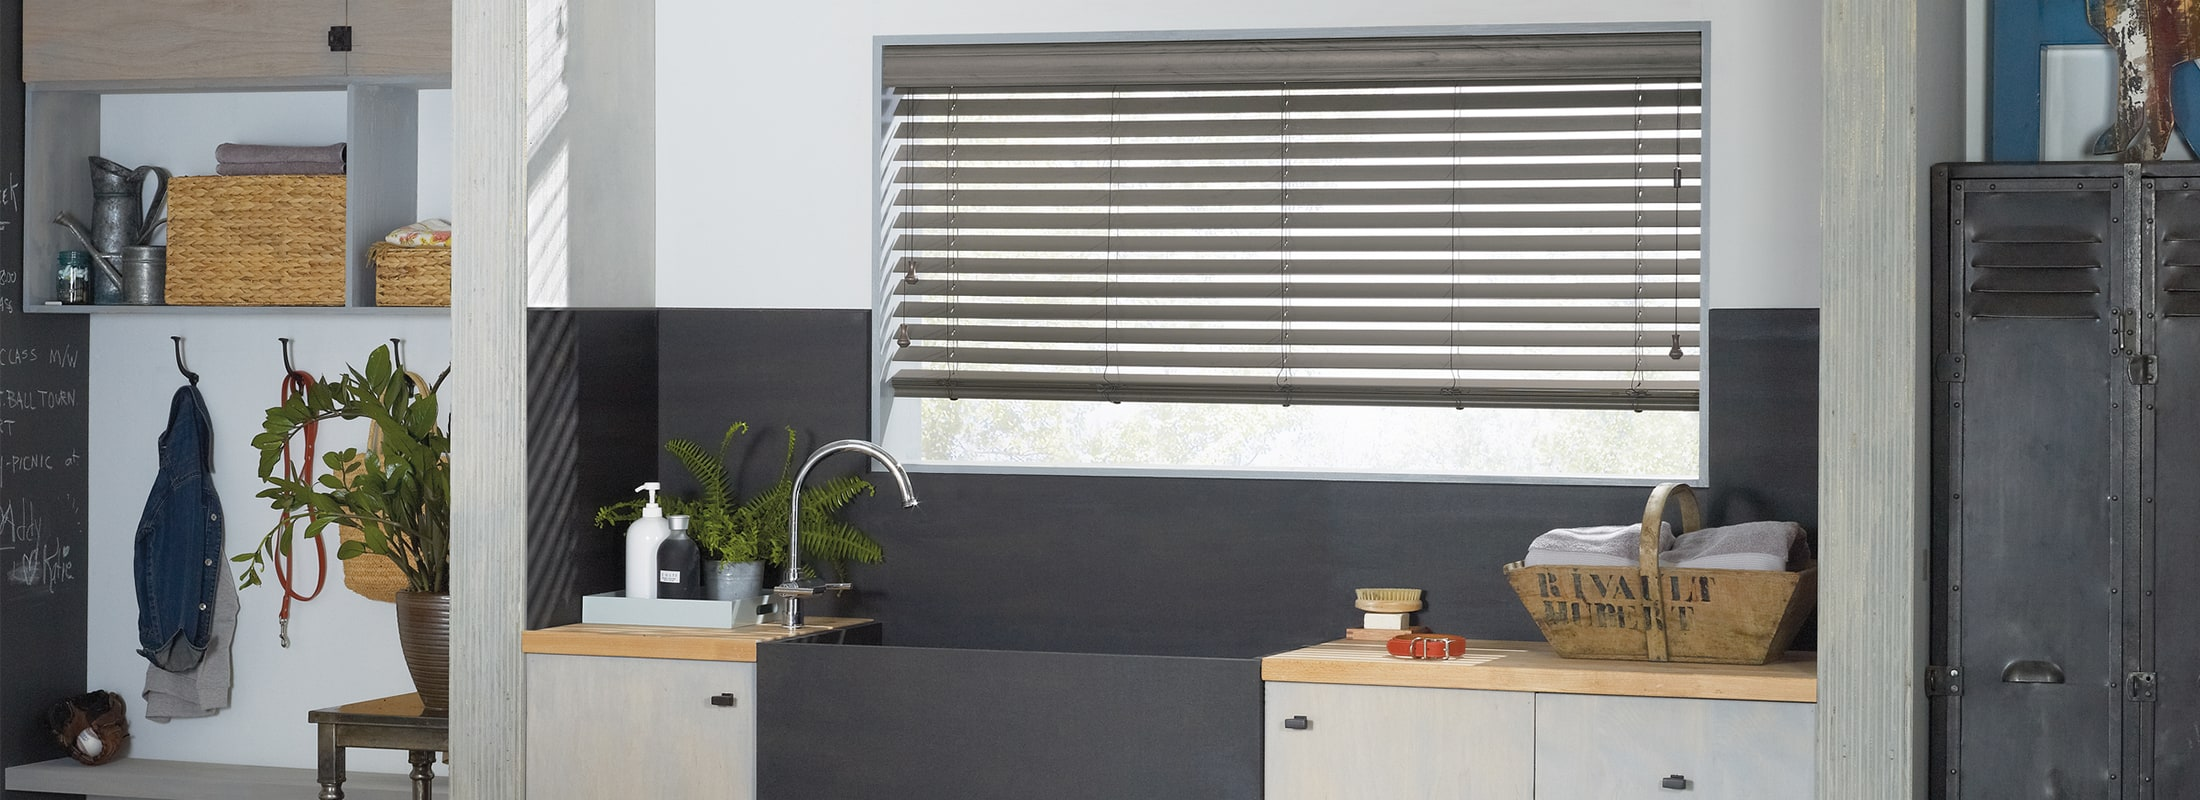 Alternative wood blinds in Renditions Alternative Wood Wet Pavement - EverWood